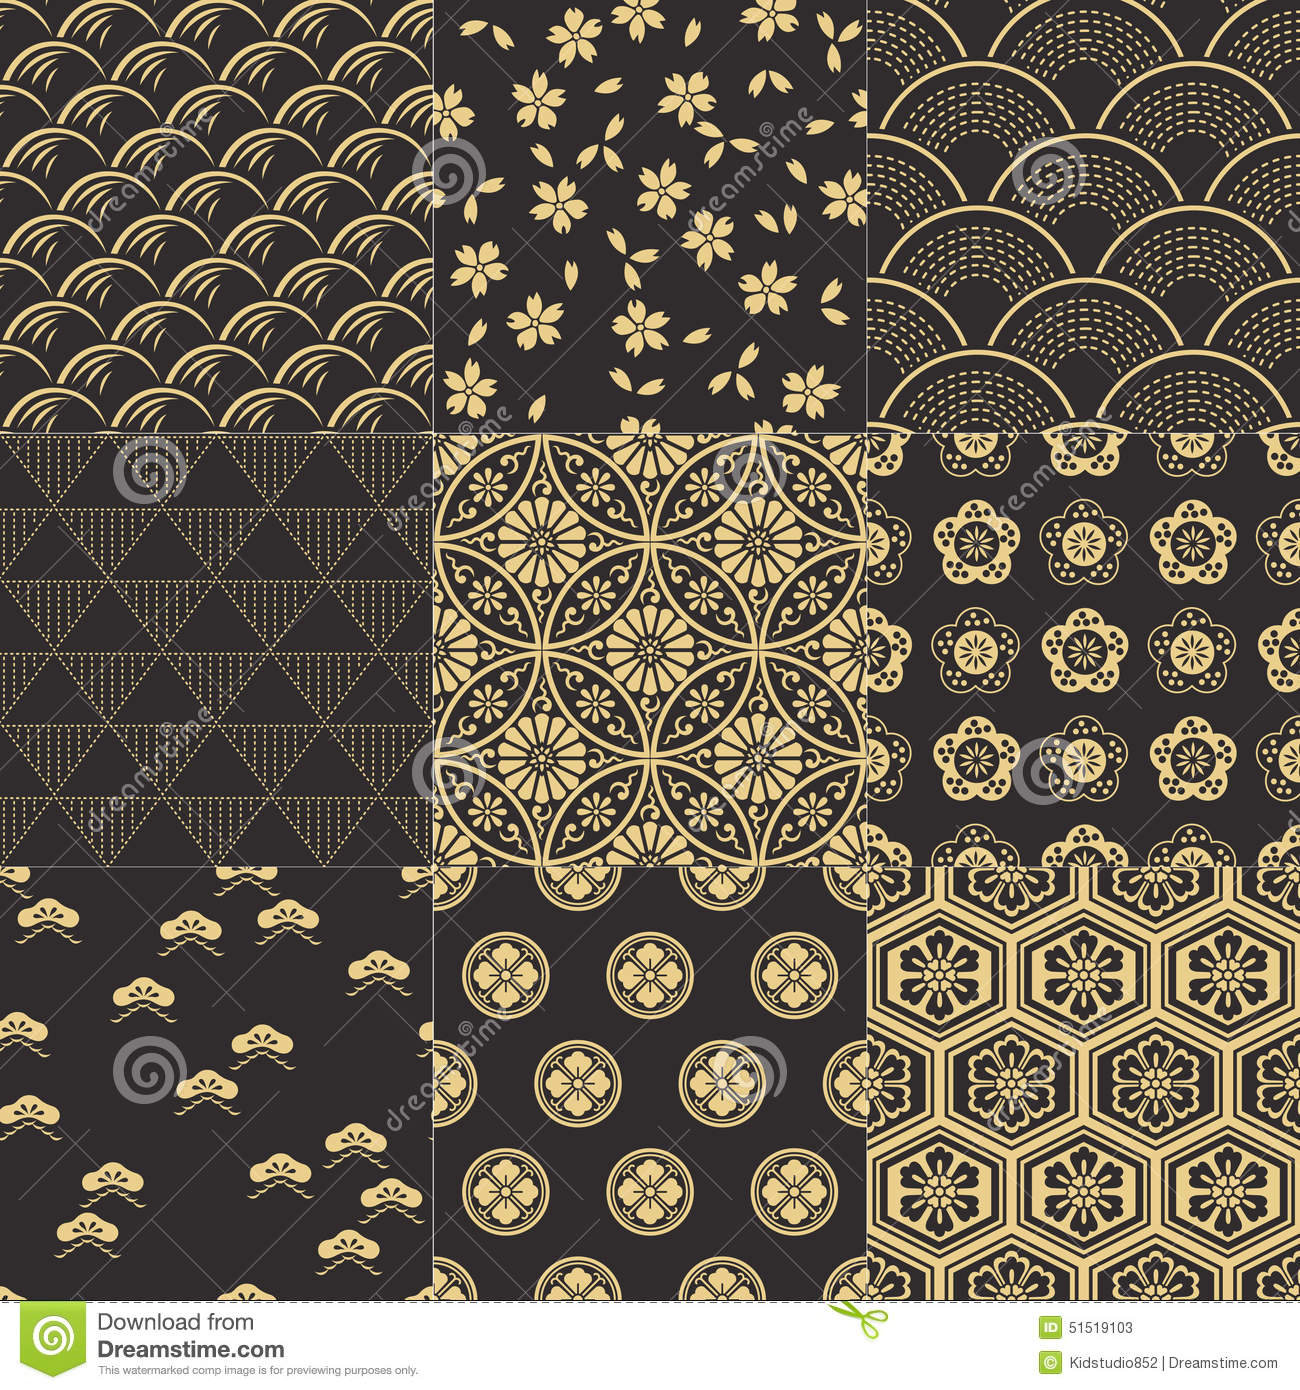 geometrical pattern (Japanese Edition)